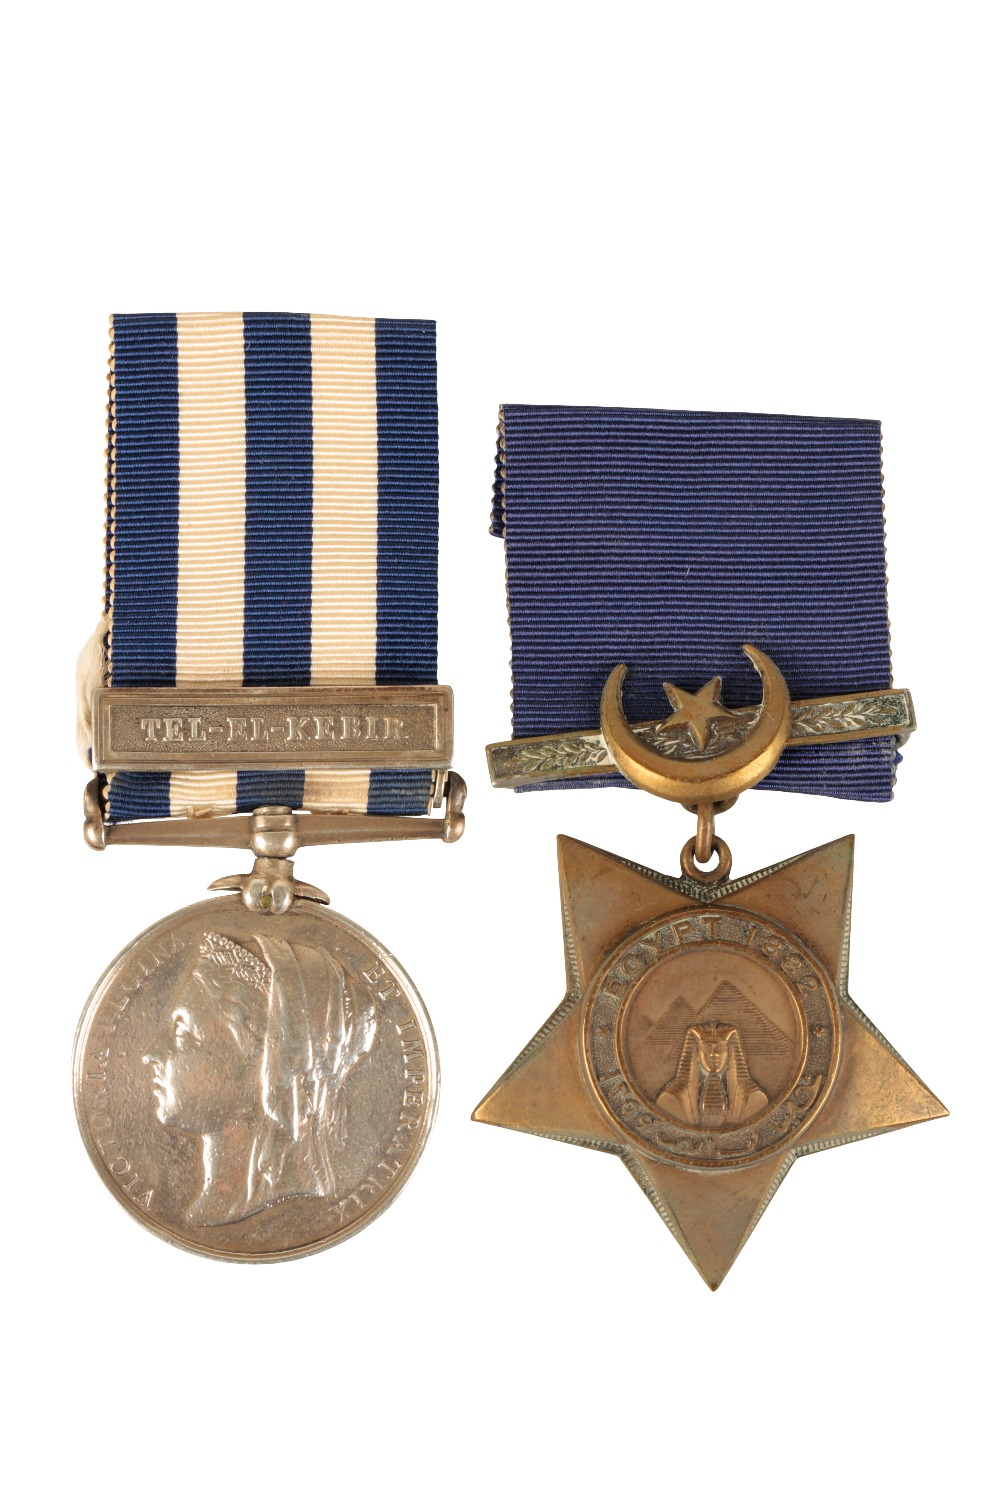 Lot 52 - EGYPT MEDAL & KHEDIVES STAR TO 706 PTE W KENNEDY HIGHLAND LIGHT INFANTRY